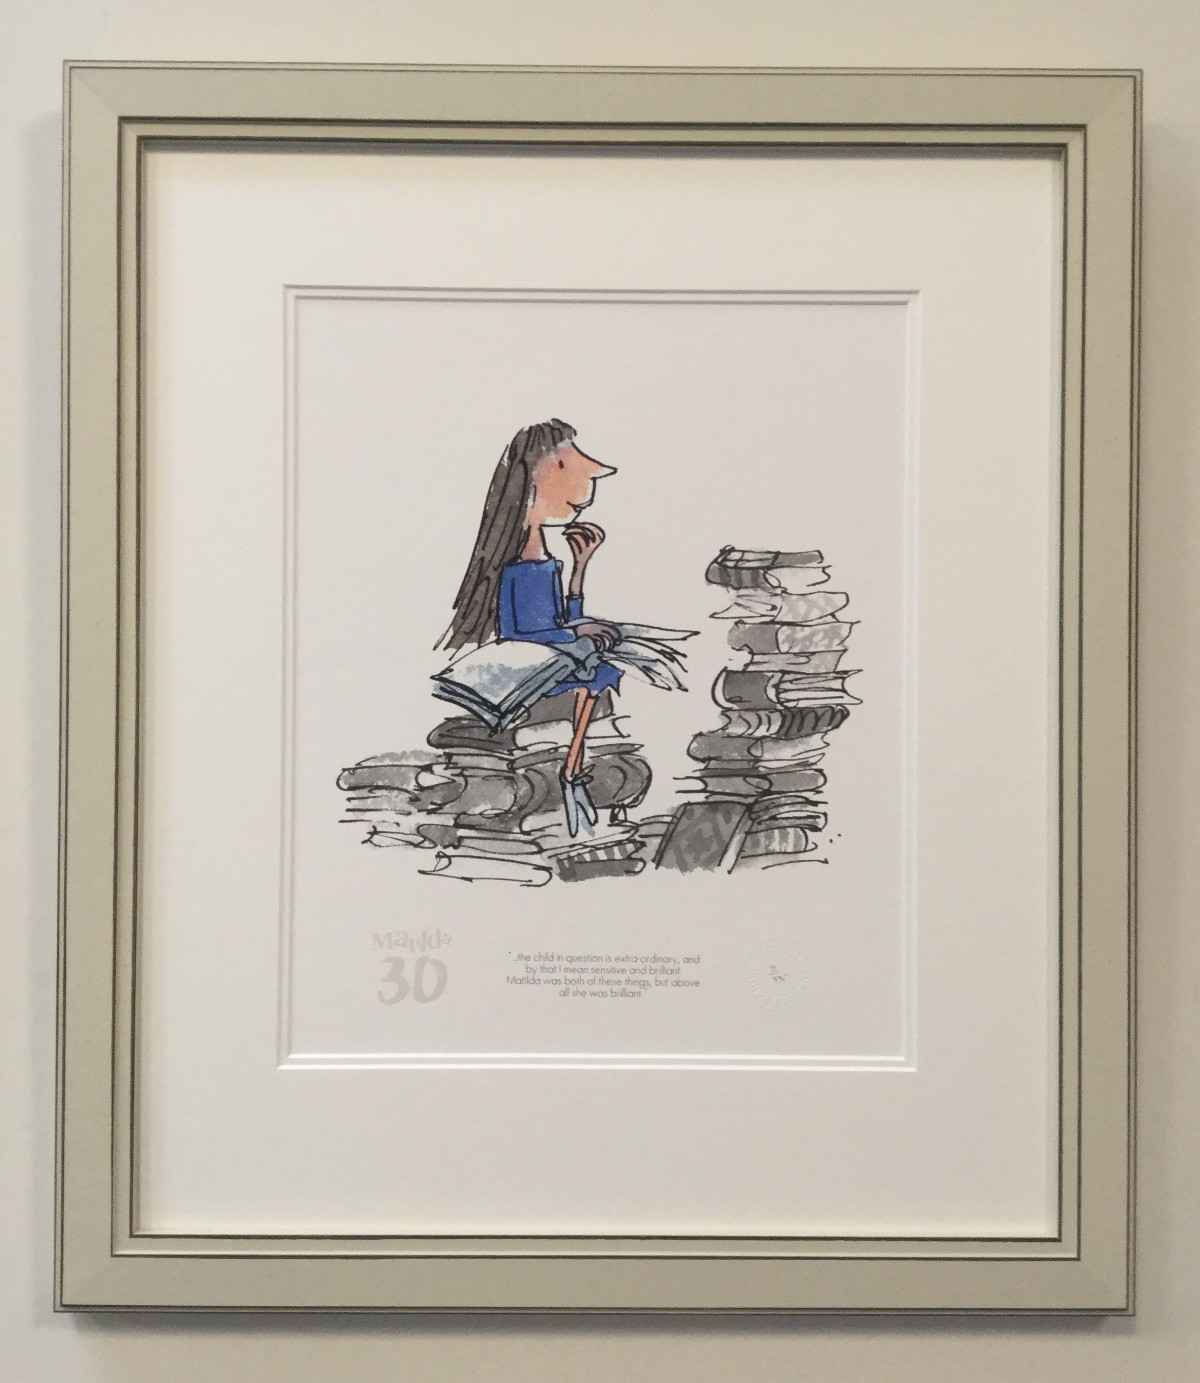 Matilda 30th - The Child in Question is Extra-ordinary by Quentin Blake